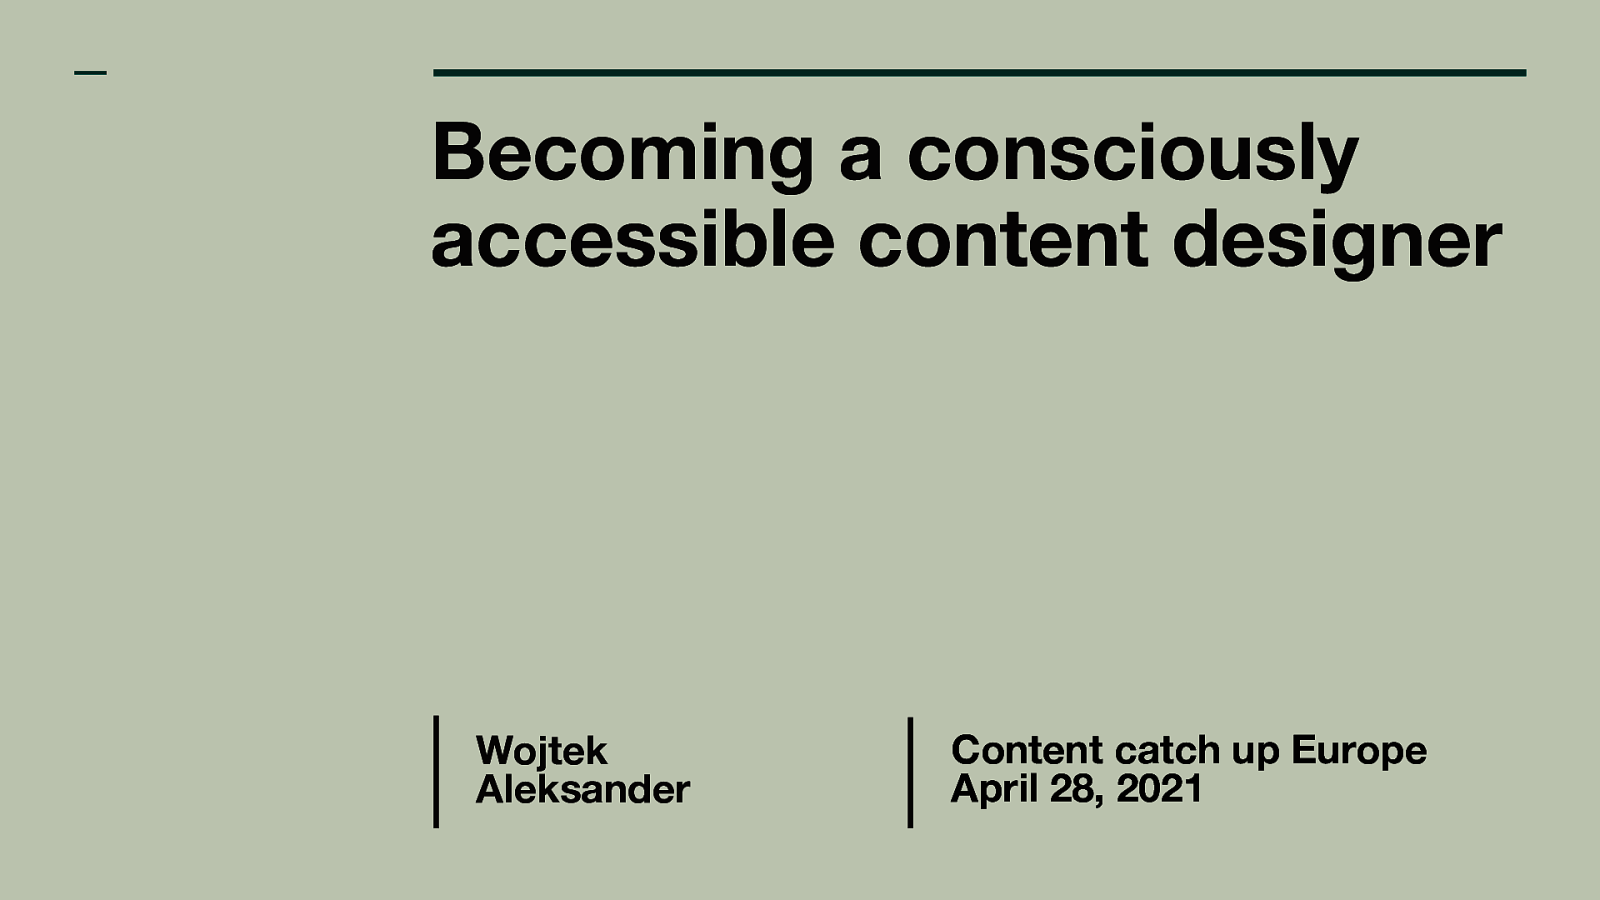 Becoming a consciously accessible content designer